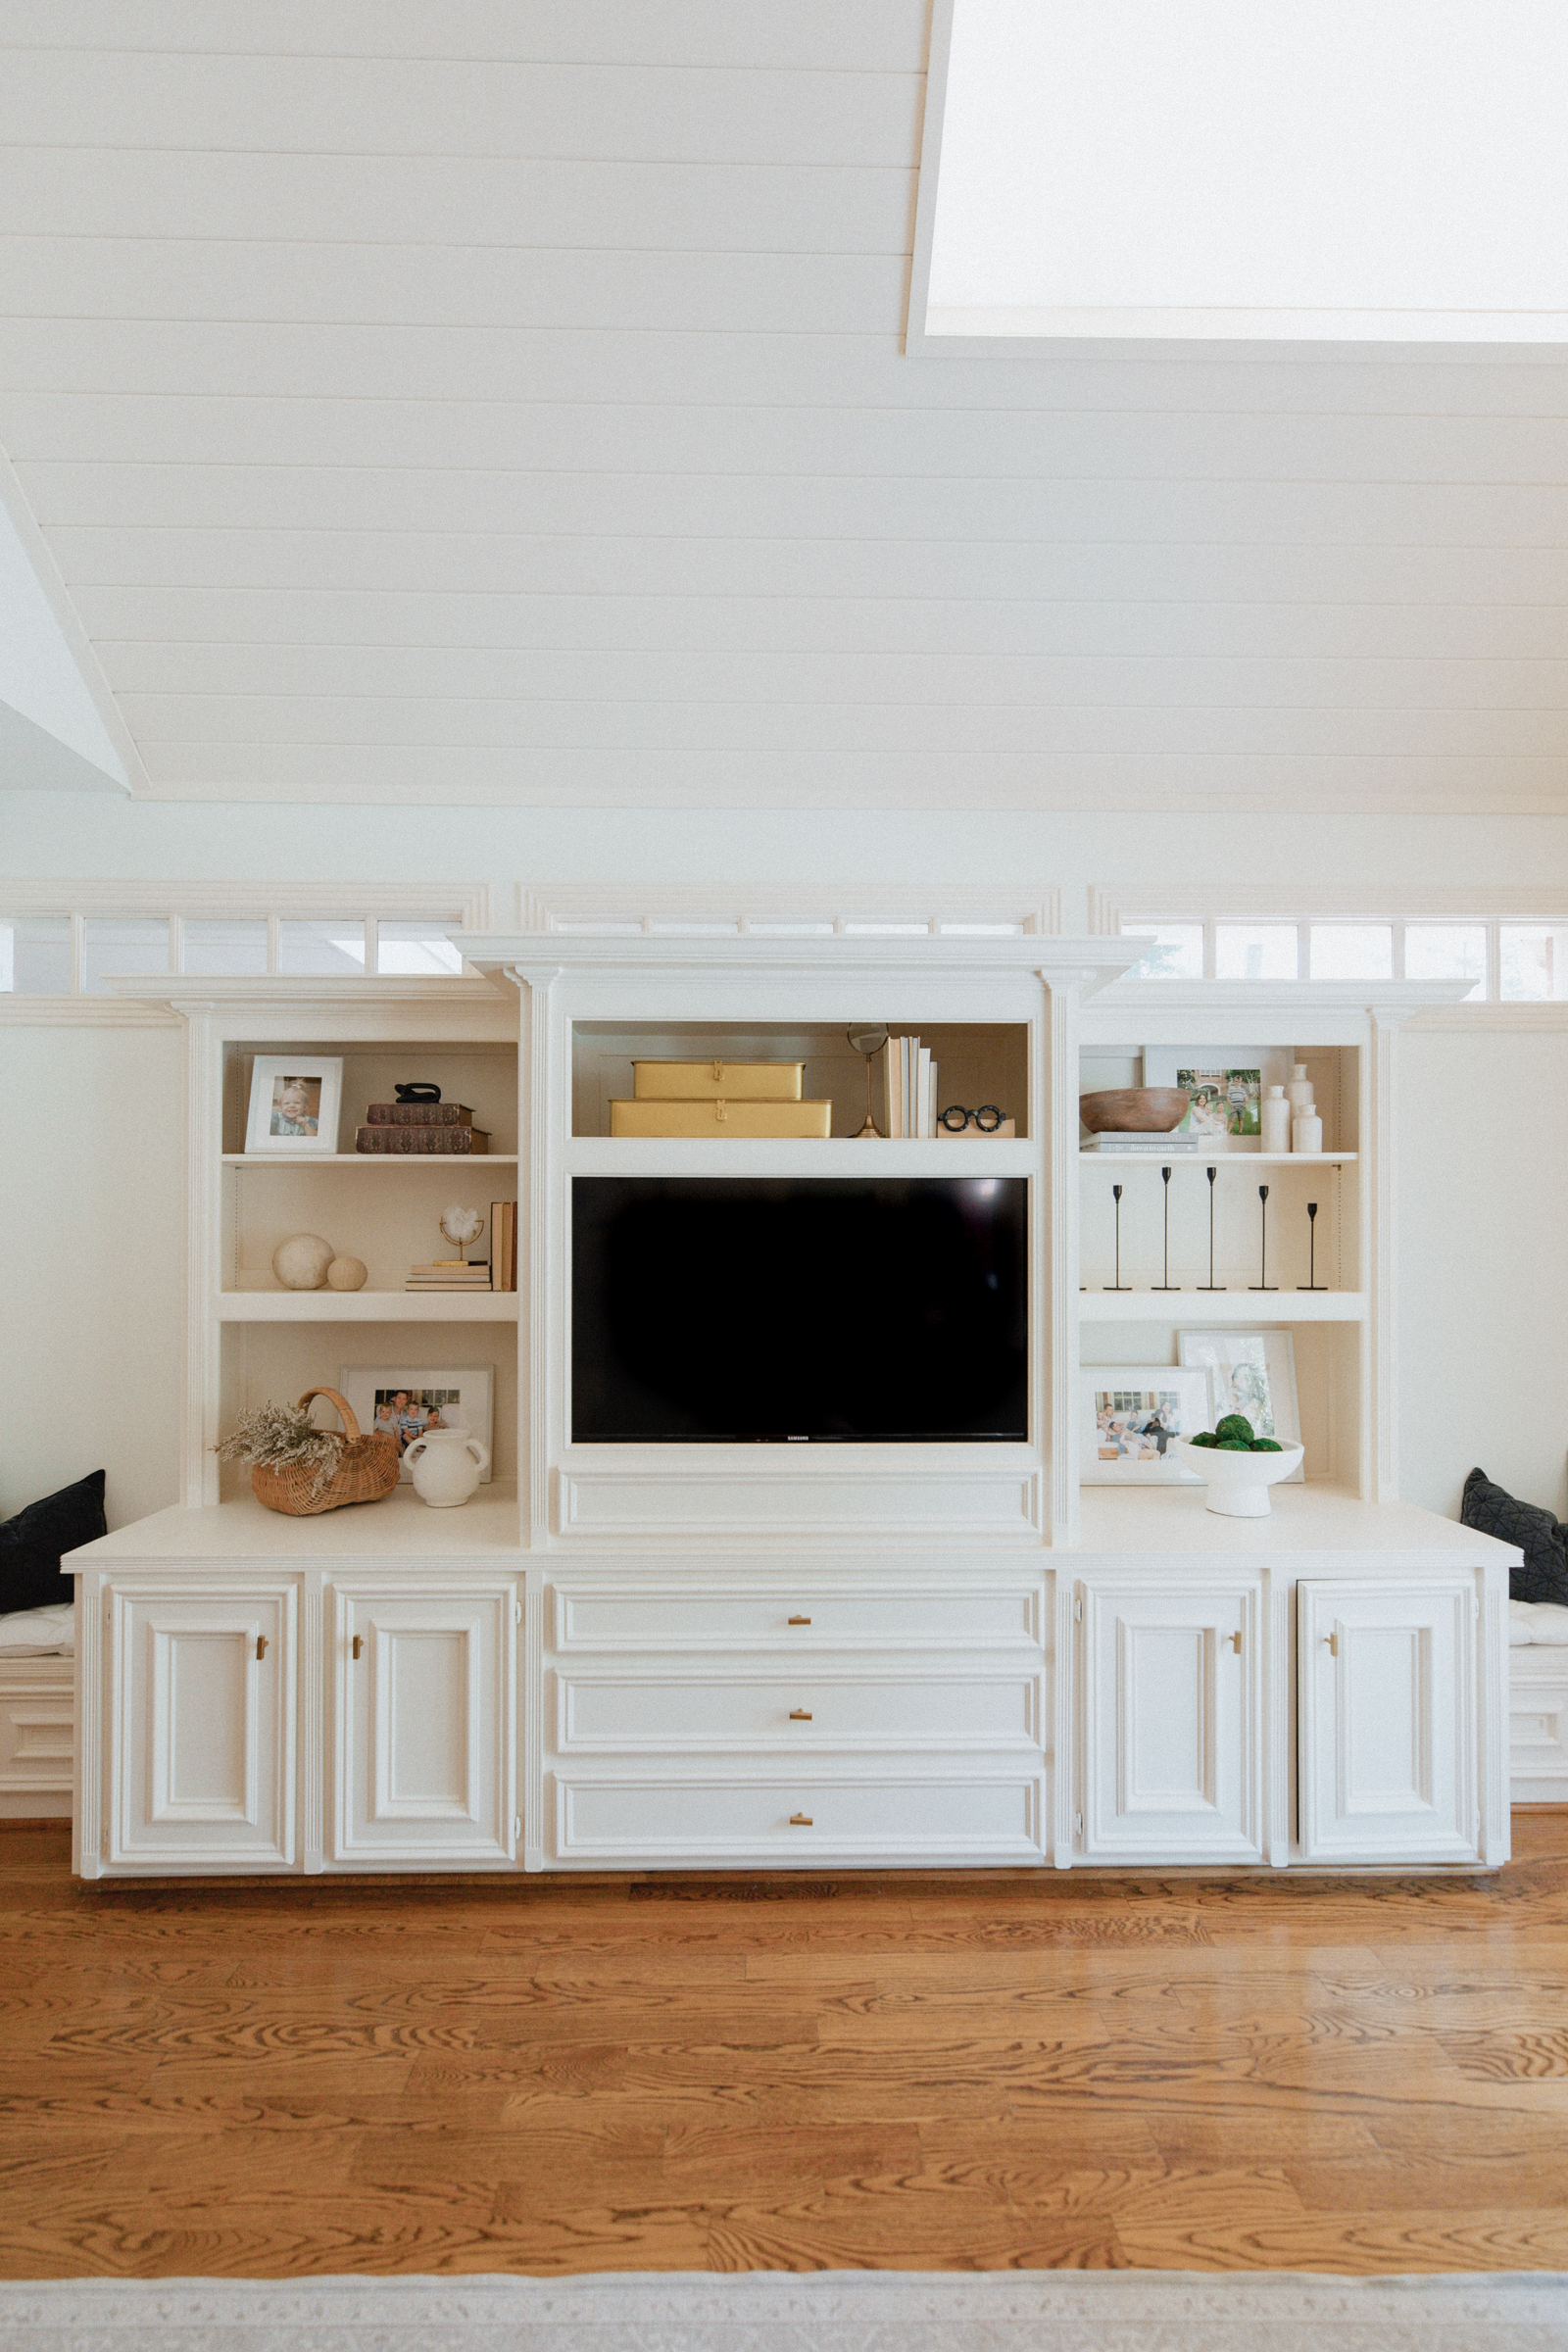 Picture of book shelf with built in TV part living room decor